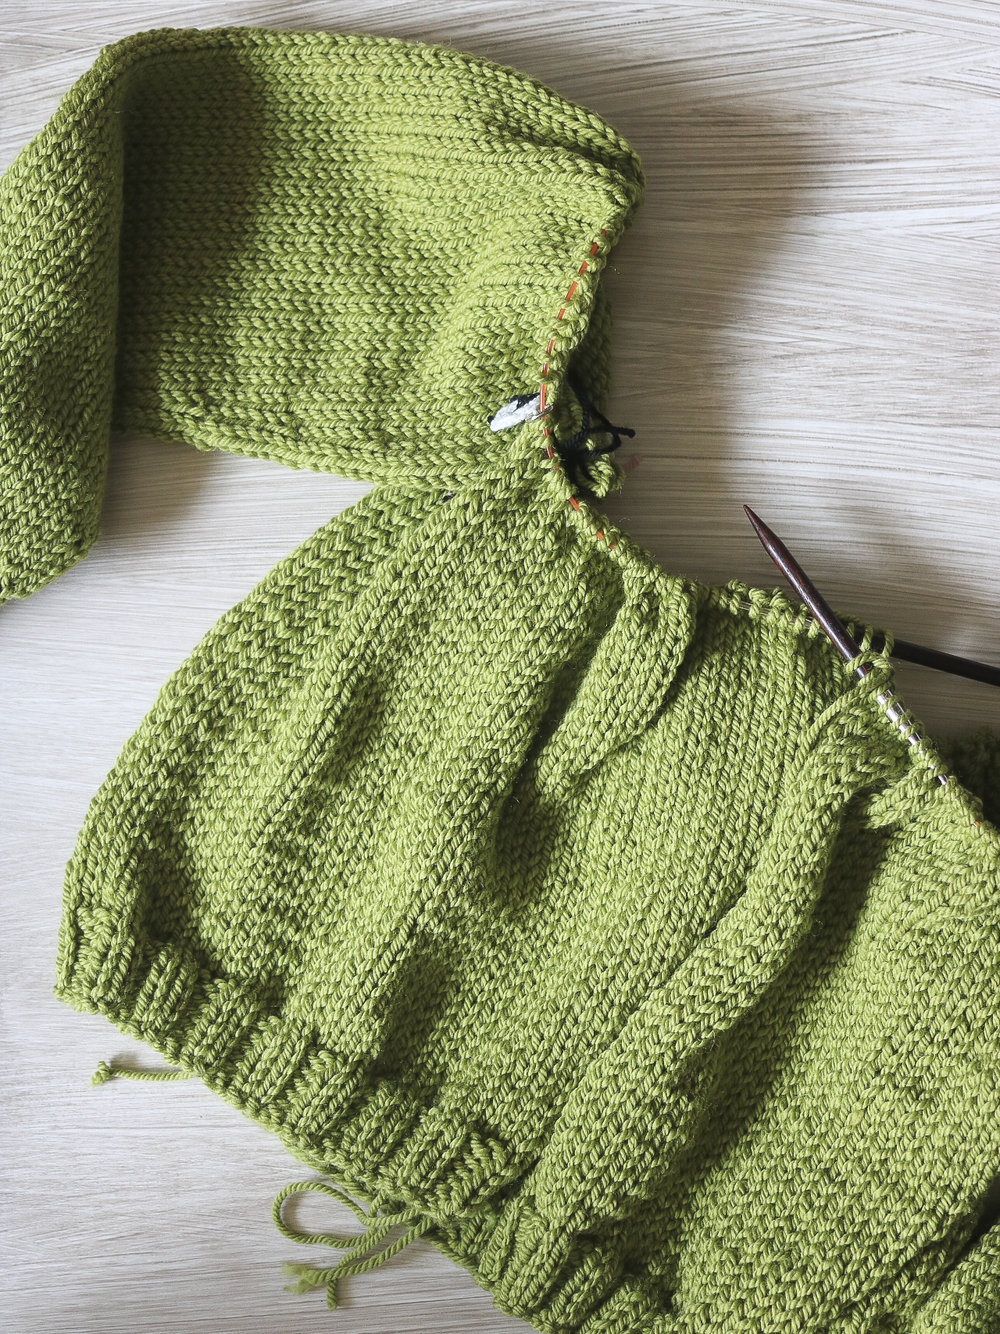 Beginning the yoke of a Carbeth Cardigan